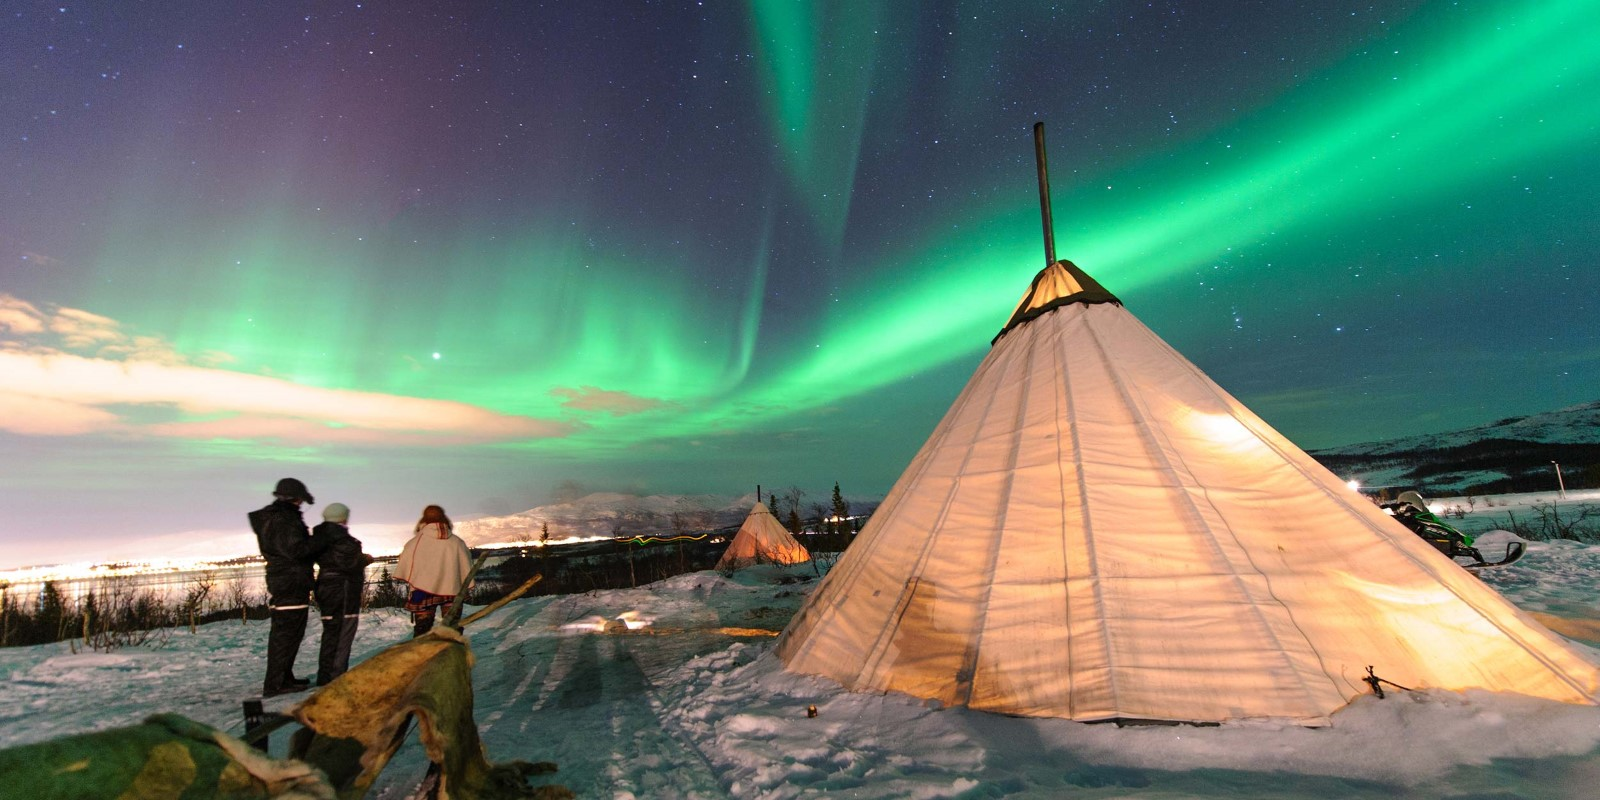 Sami culture and Northern light